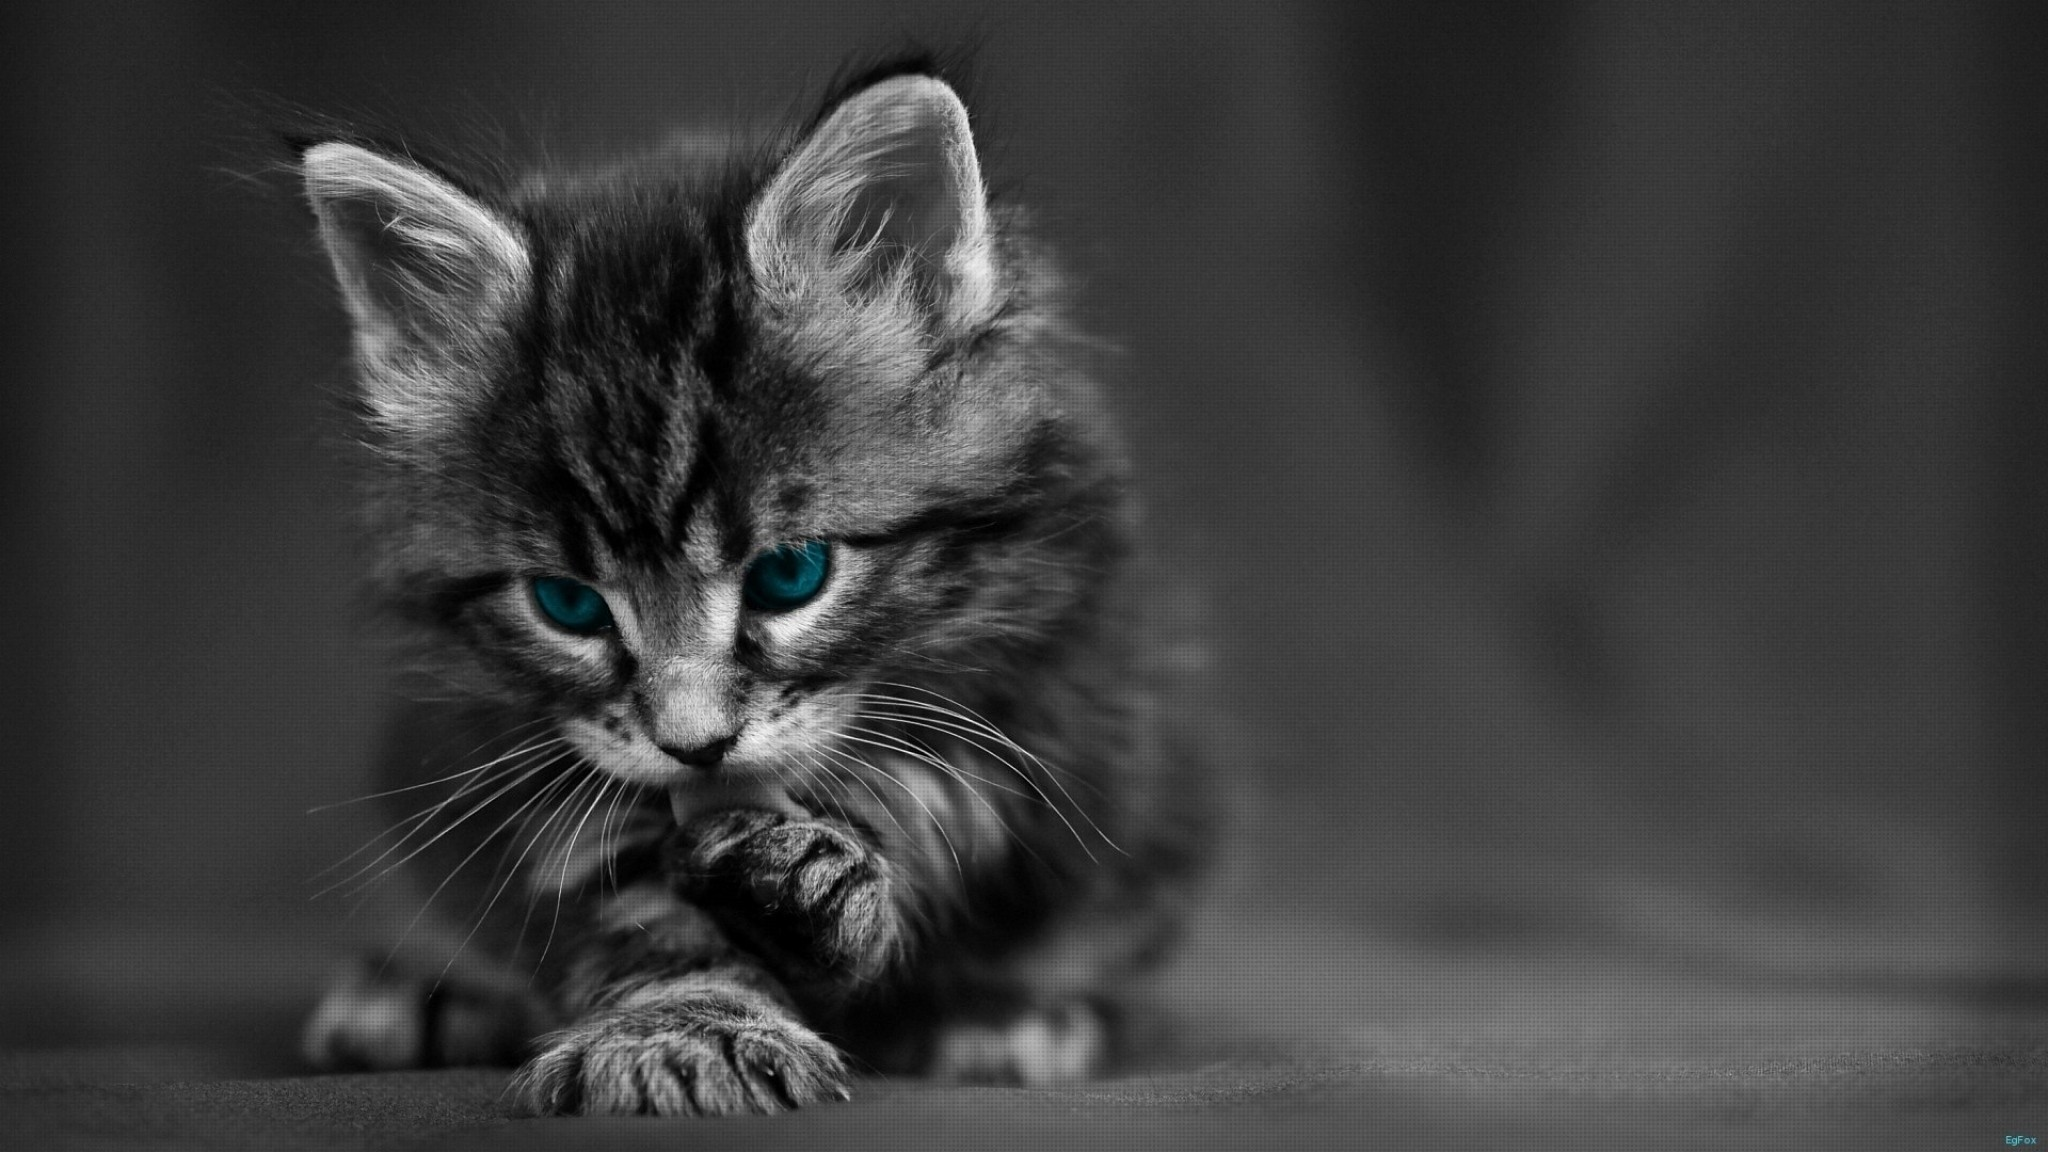 60 cat wallpapers download free awesome full hd - Free wallpaper of kittens ...